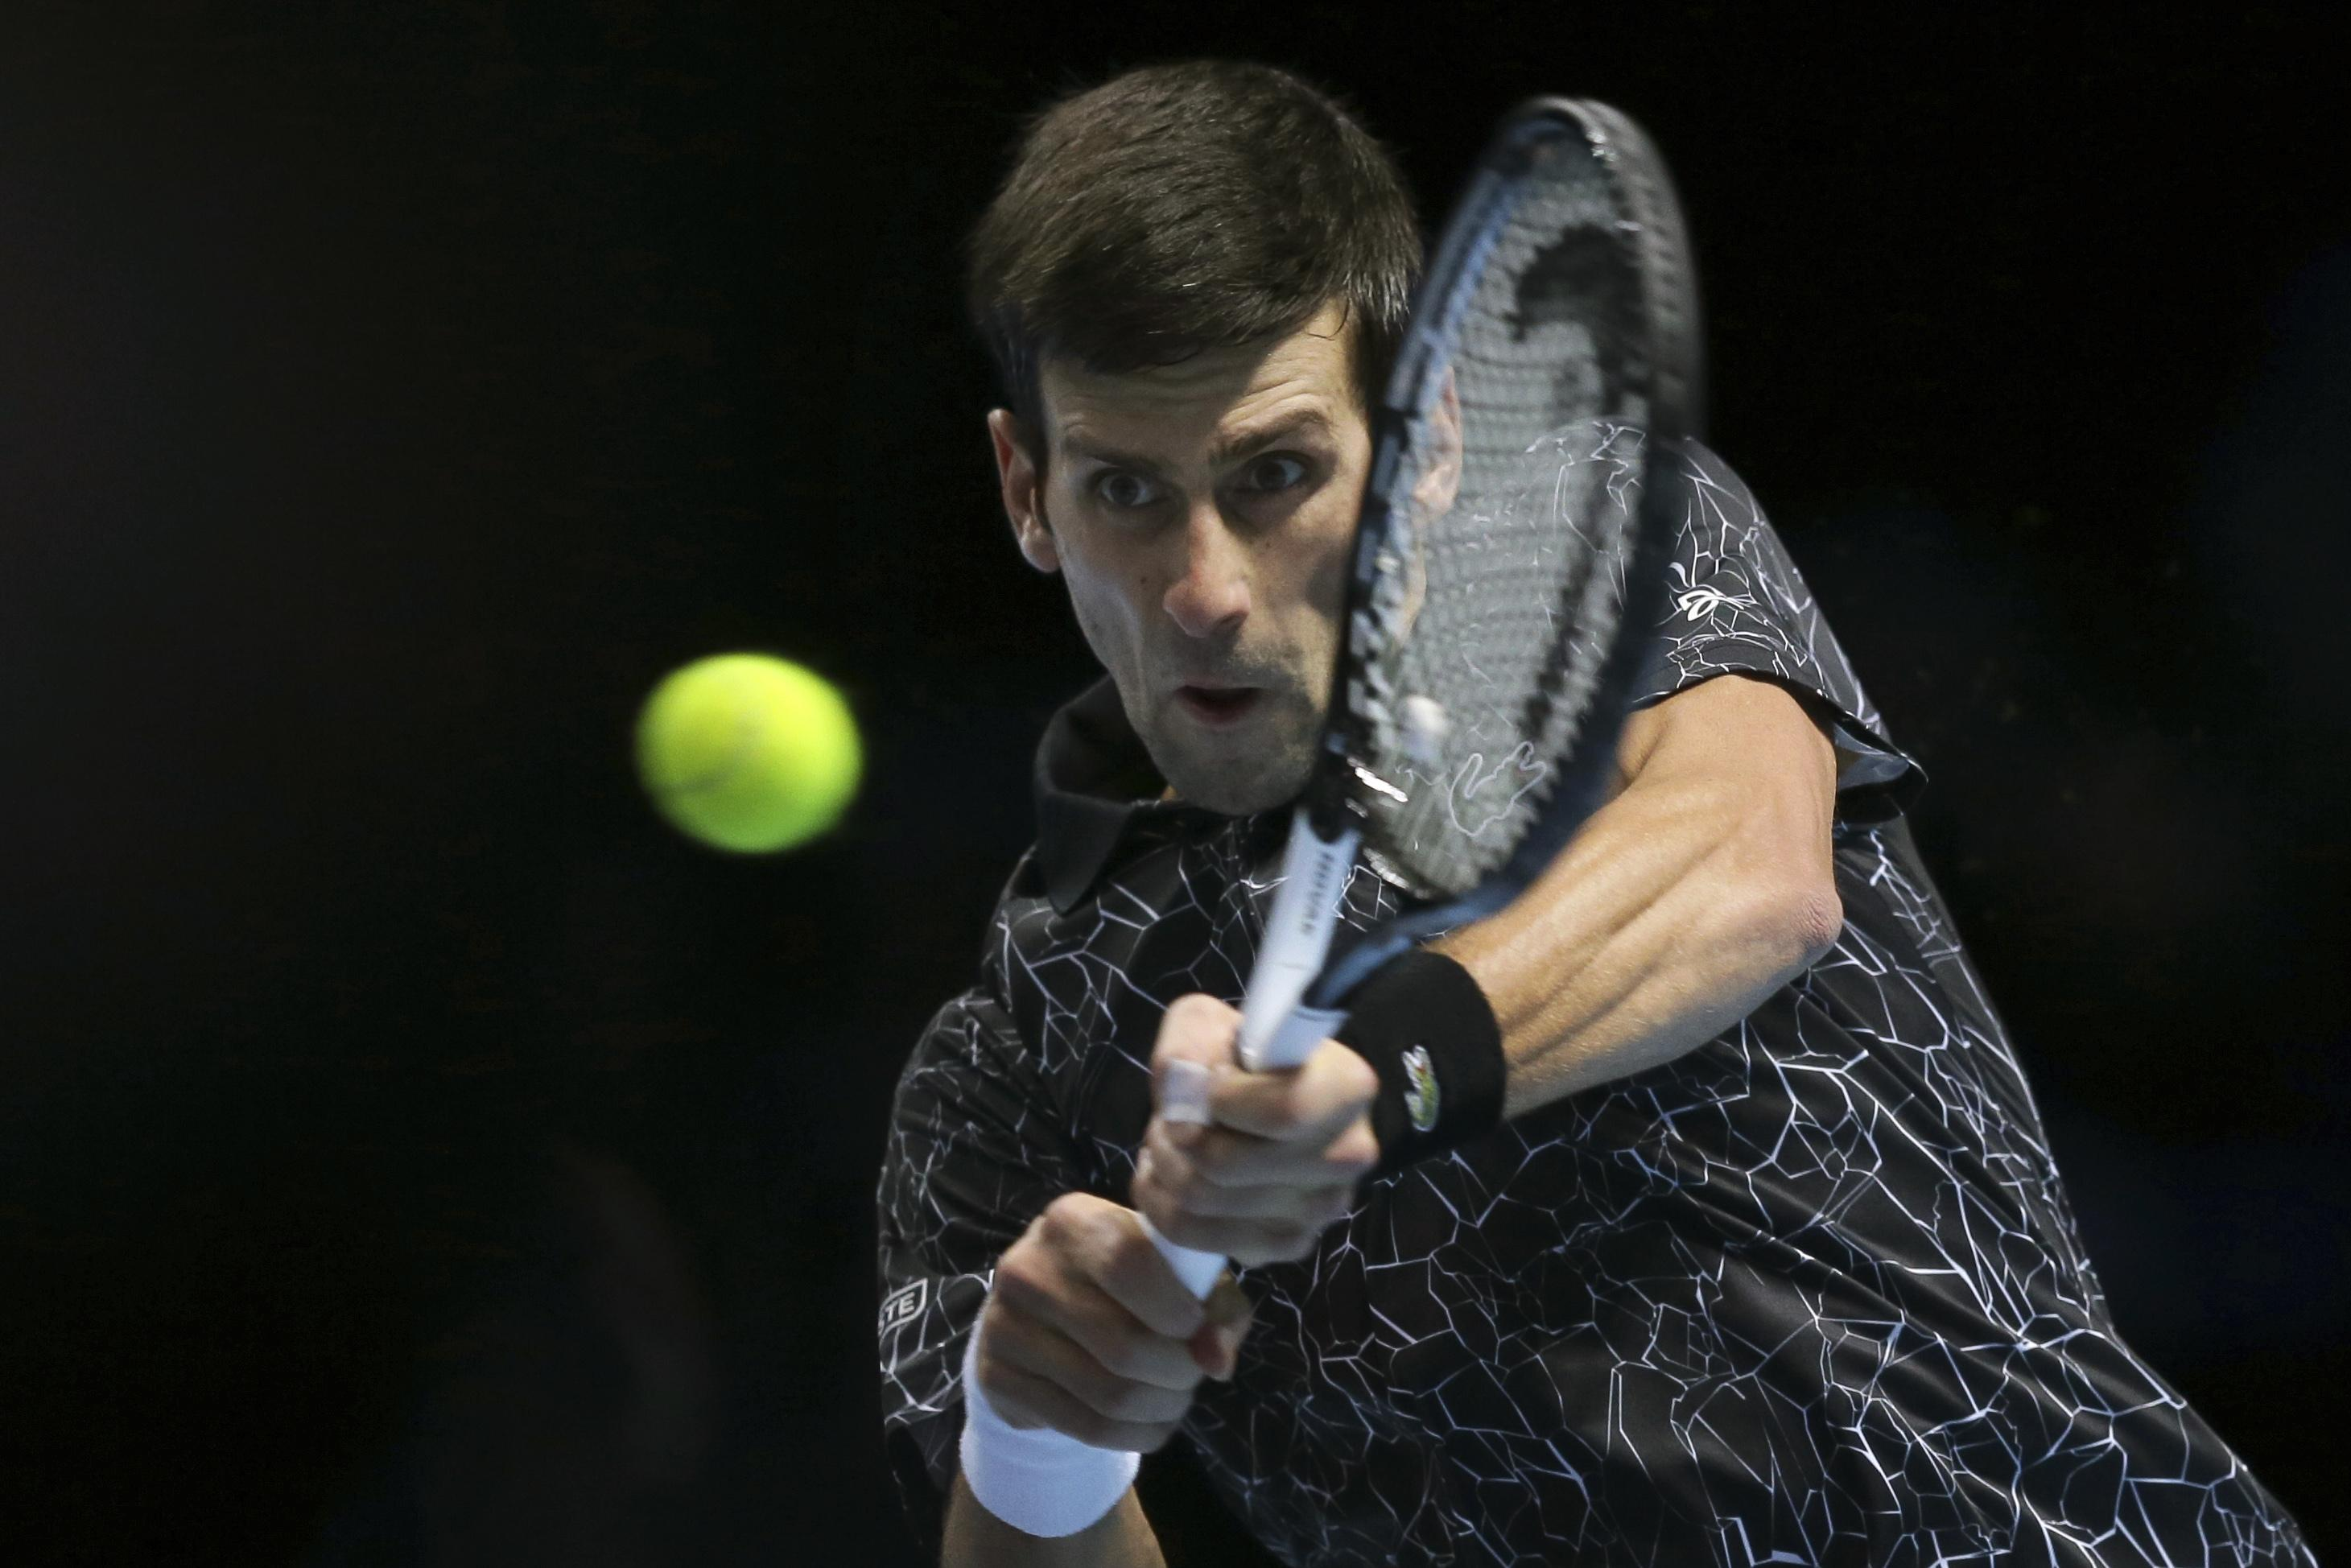 Djokovic struggled with a spectator heckling him from the stands during the match